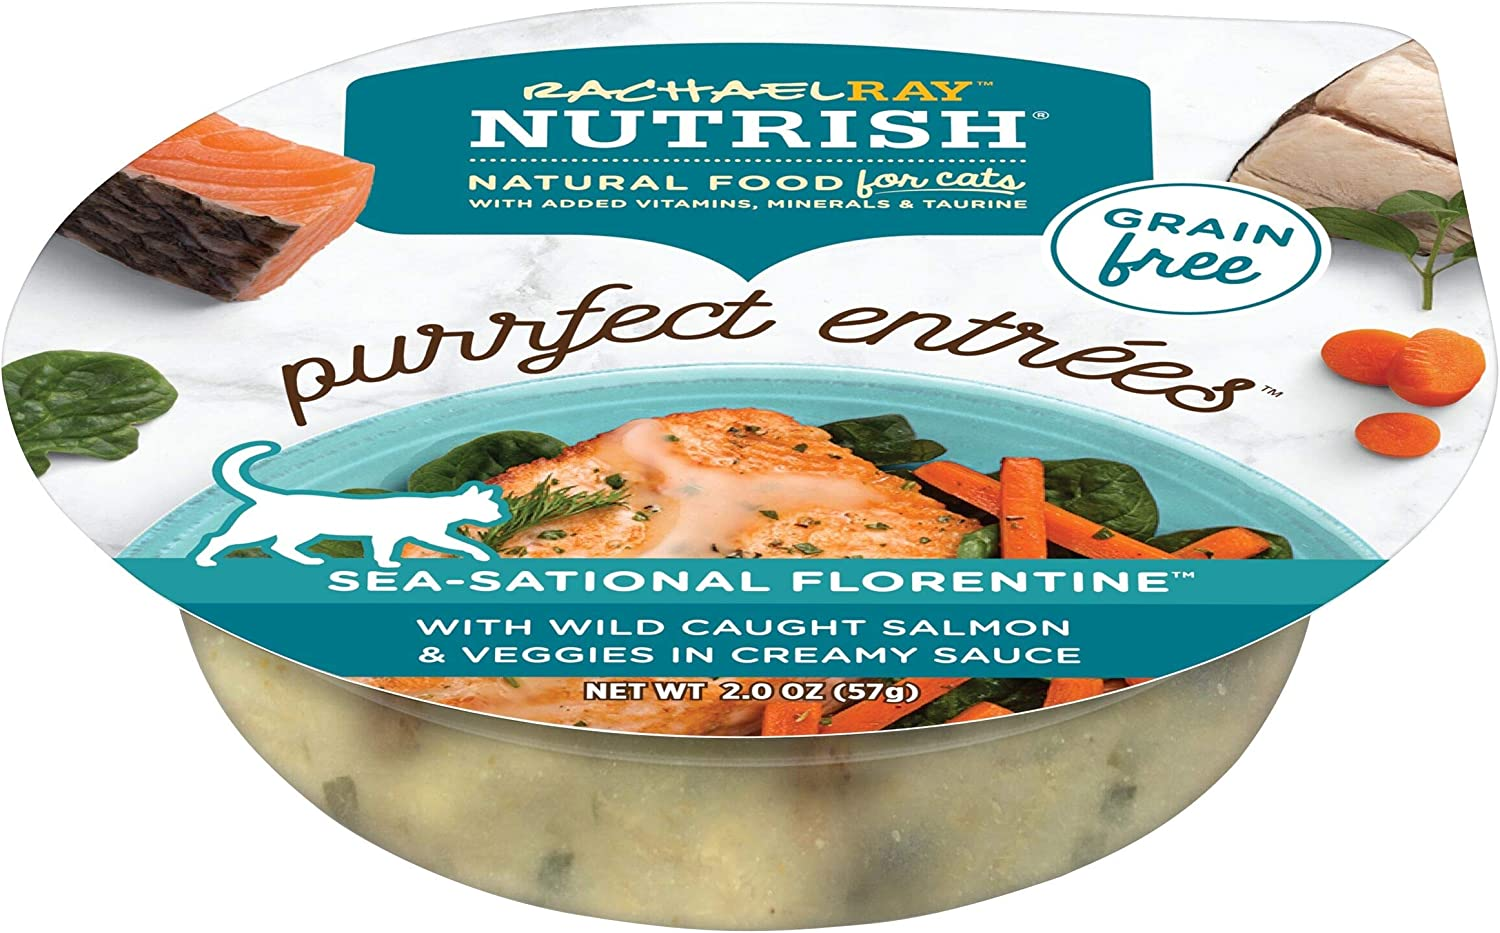 Rachael Ray Nutrish Purrfect Entrees Grain Free Natural Wet Cat Food with Wild Caught Salmon, 2.8 Oz. Tub